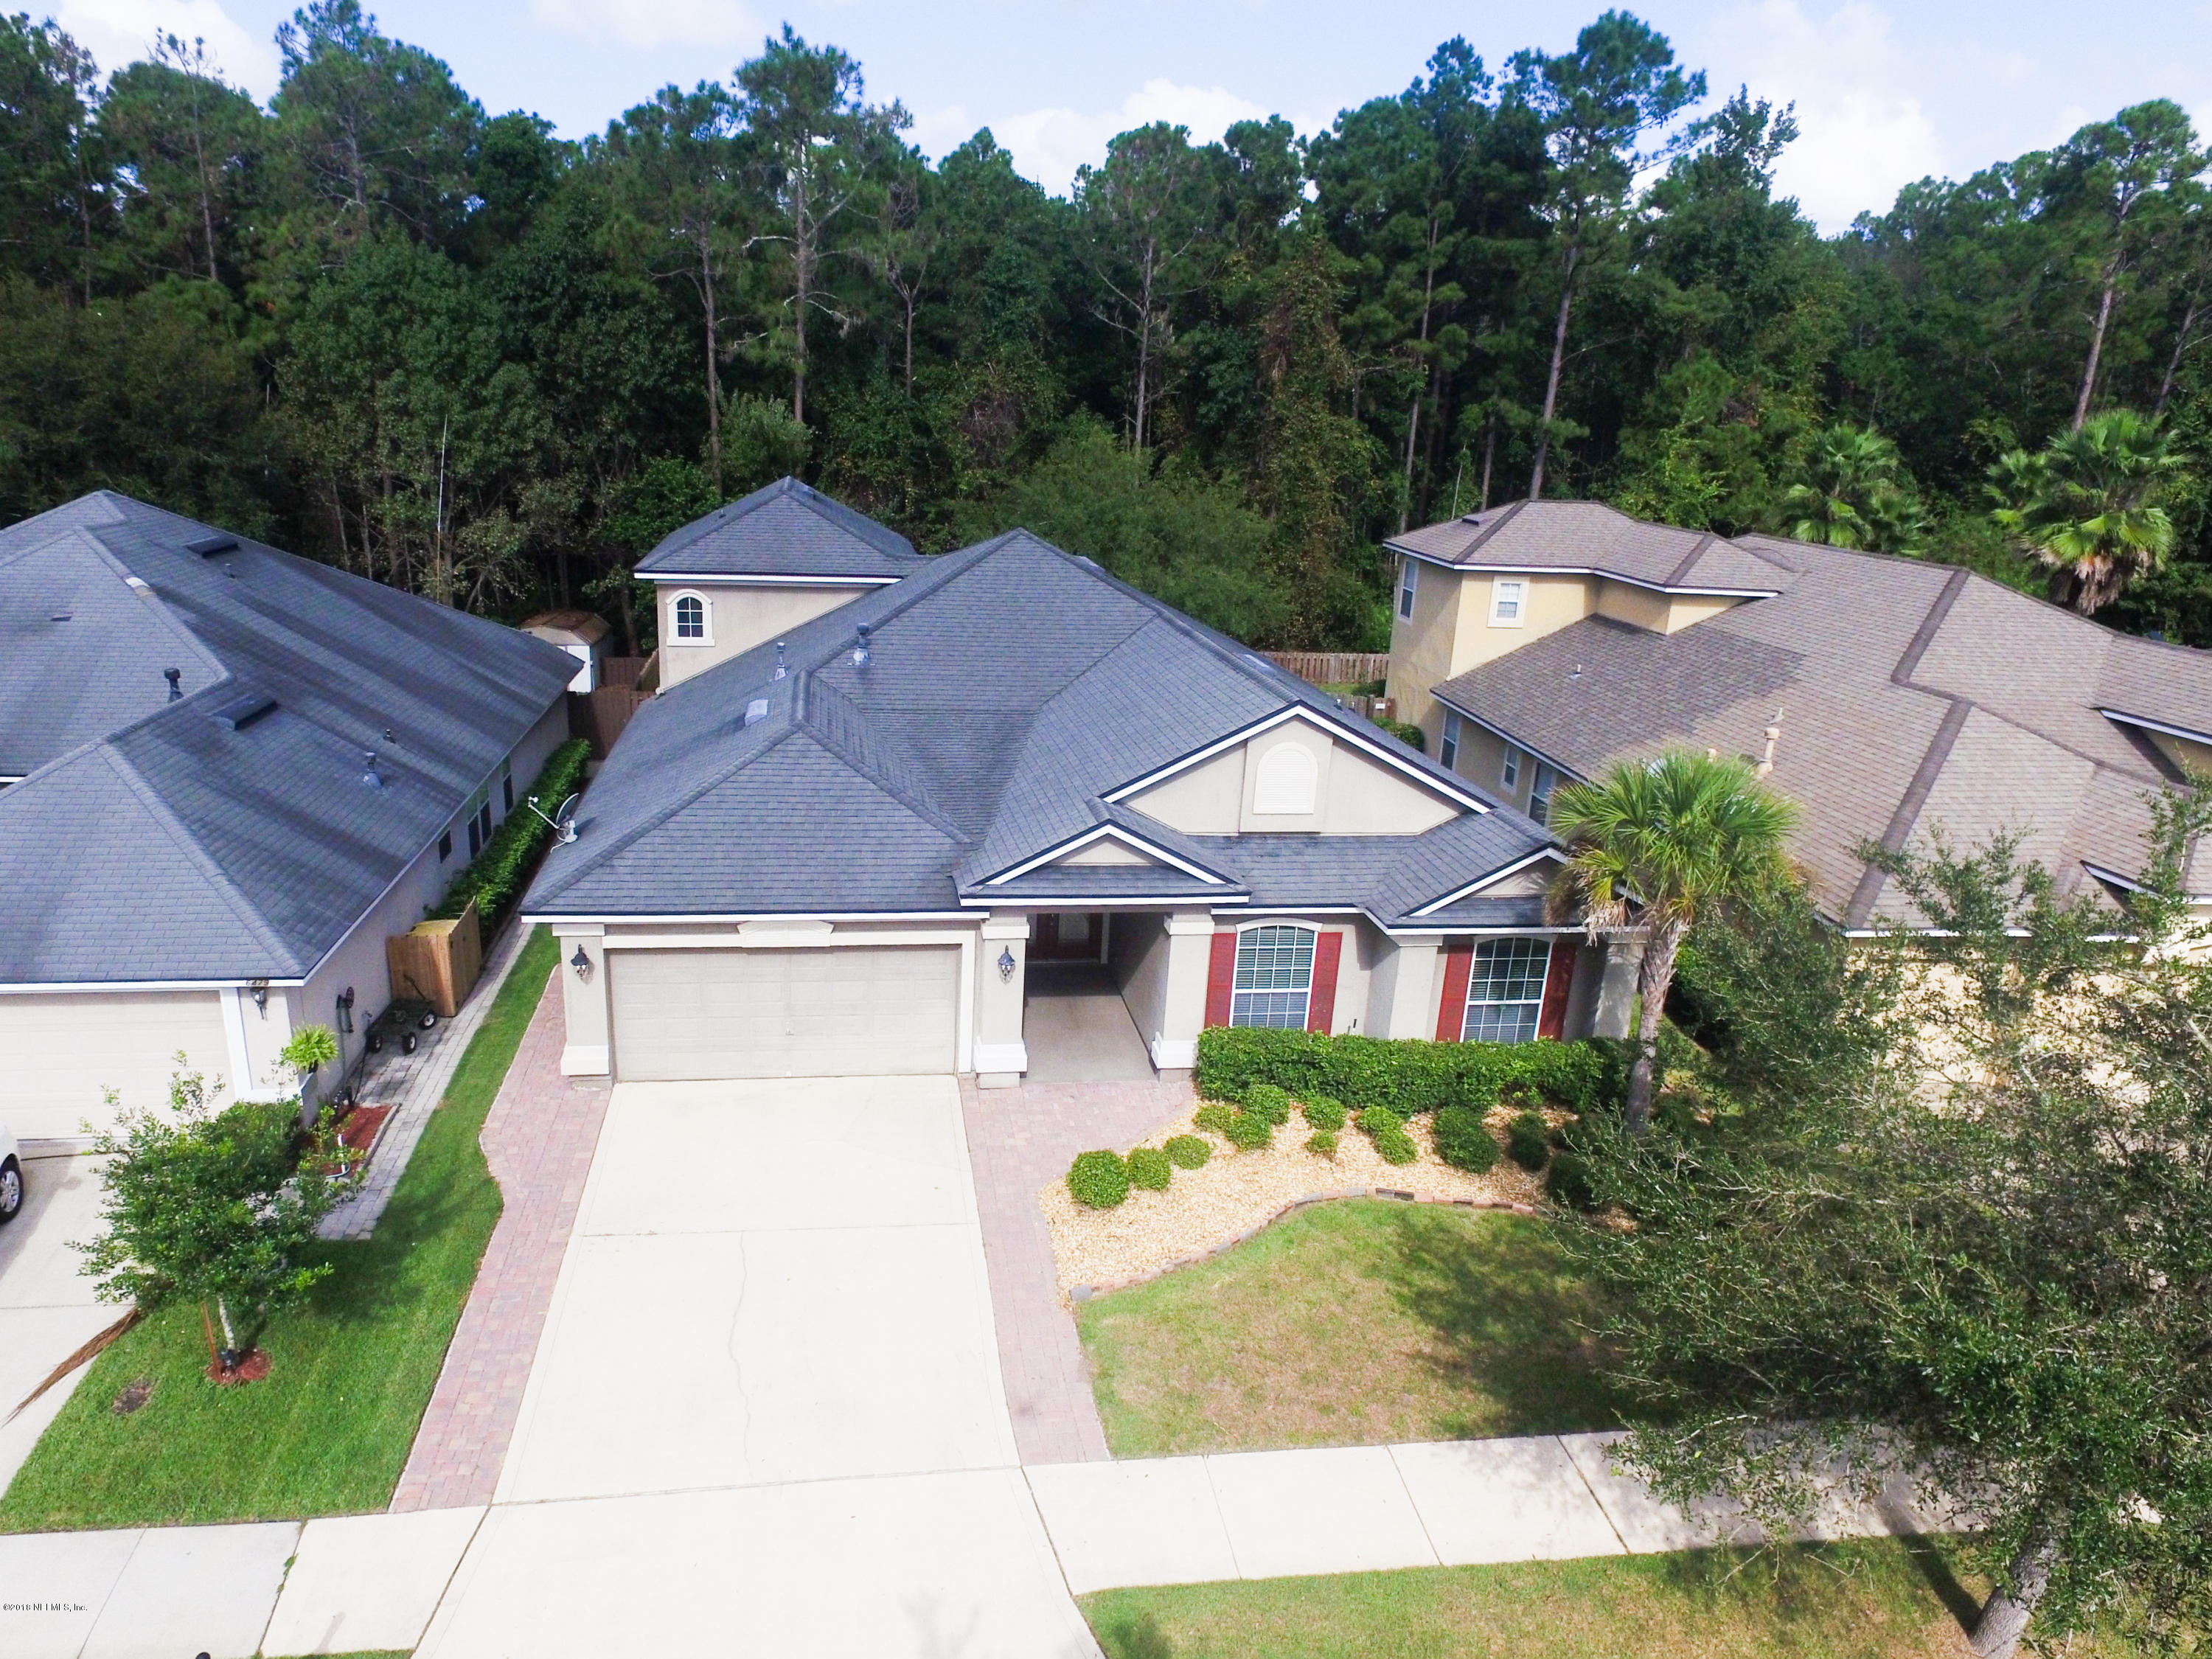 6487 SILVER GLEN, JACKSONVILLE, FLORIDA 32258, 5 Bedrooms Bedrooms, ,3 BathroomsBathrooms,Residential - single family,For sale,SILVER GLEN,959184